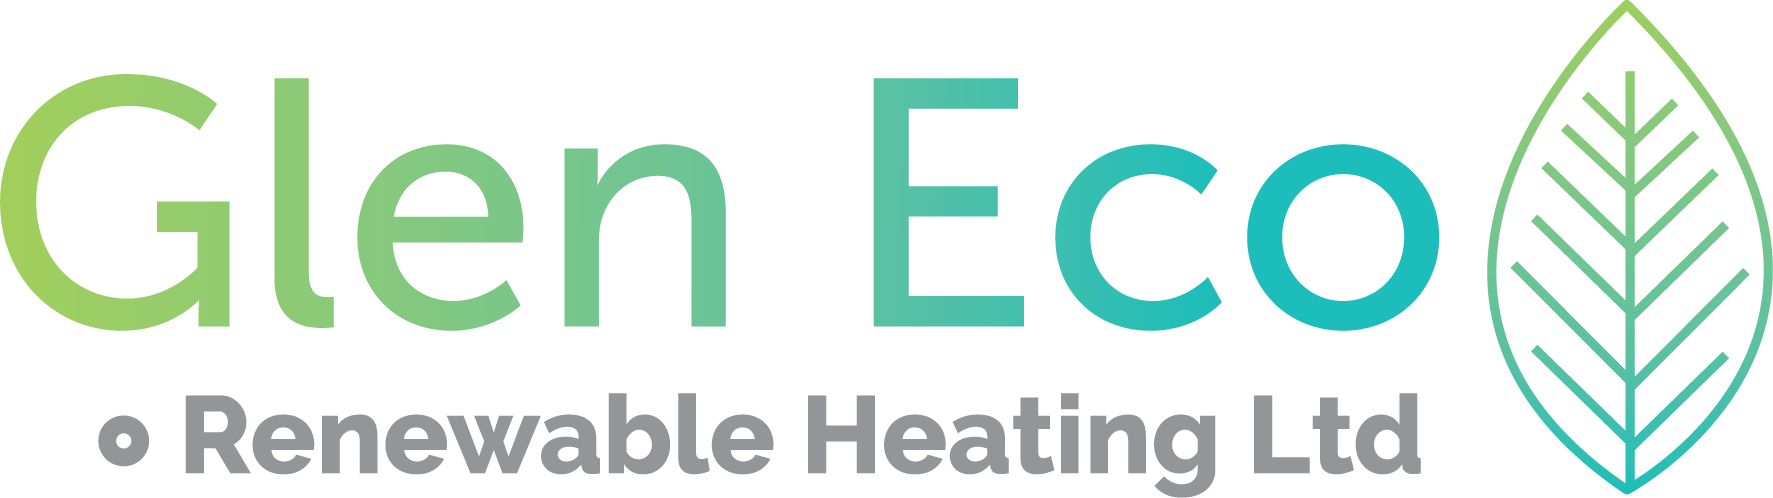 Glen Eco Renewable Heating